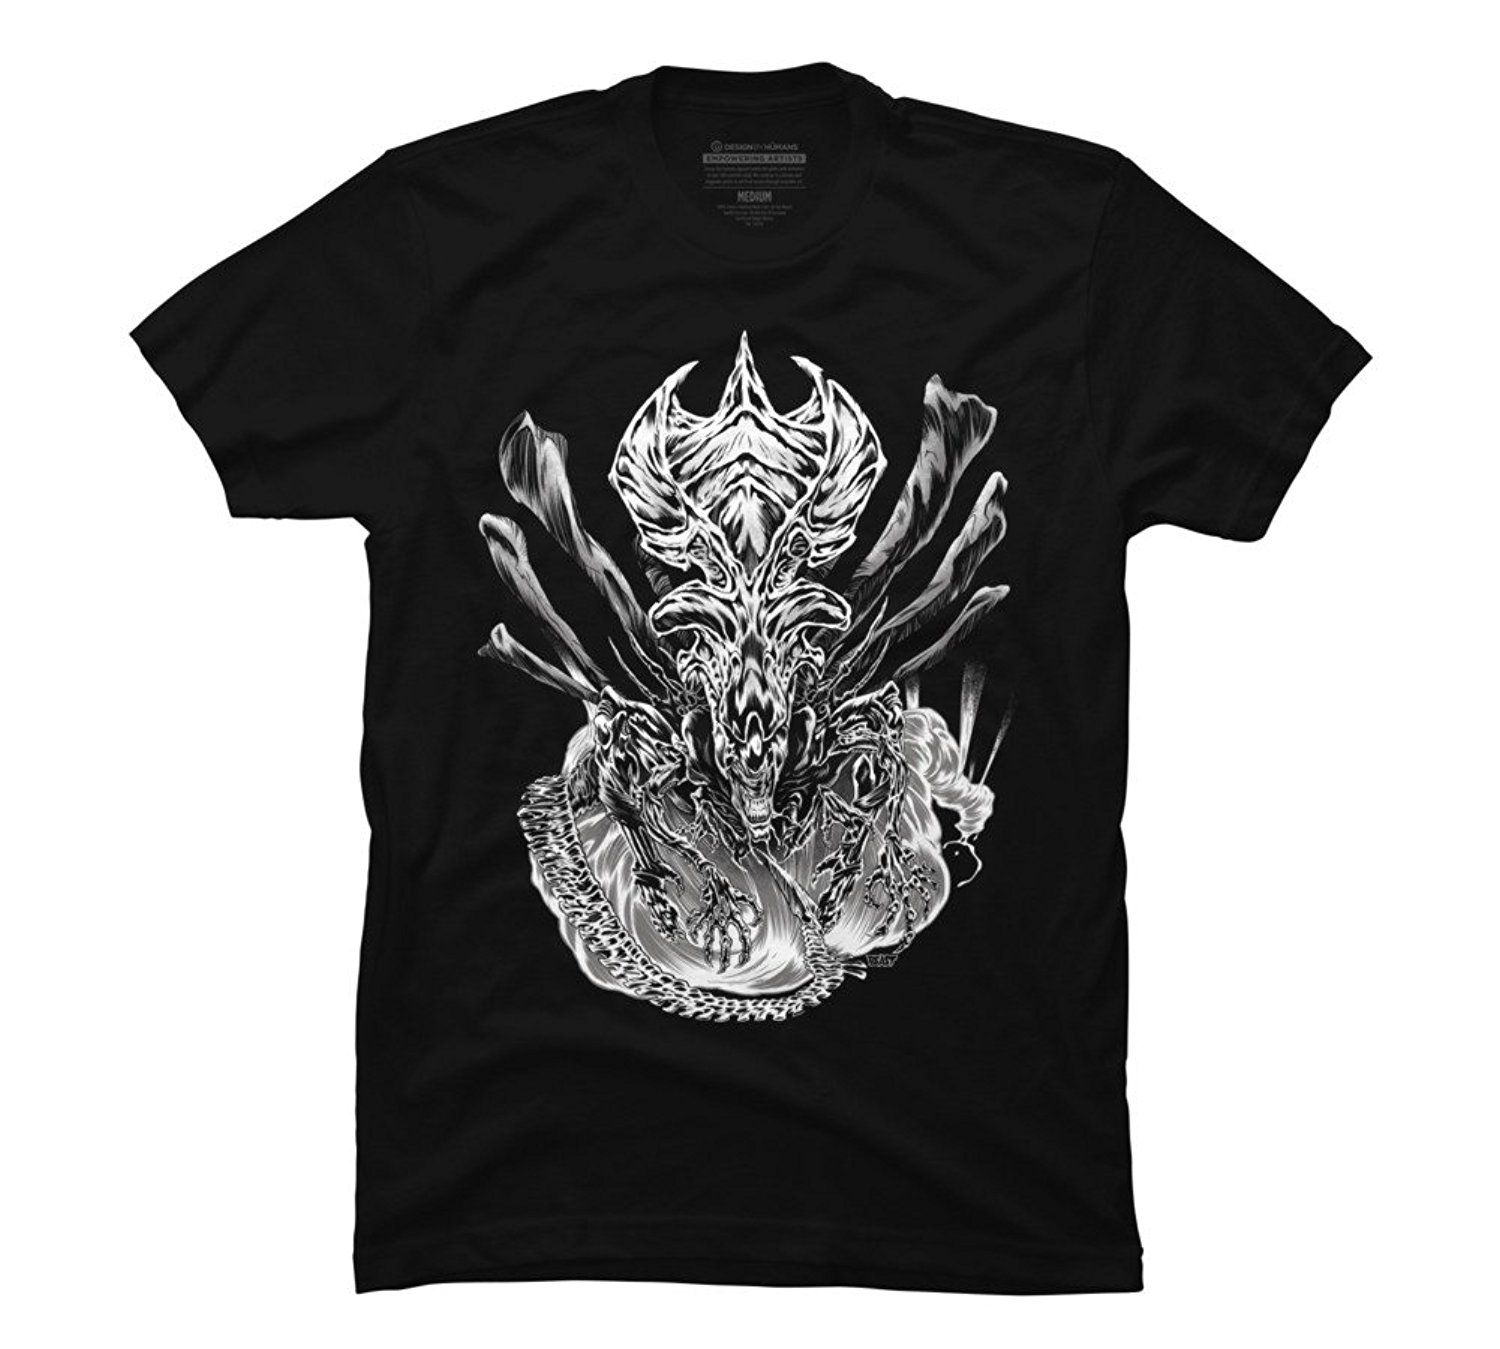 LONG LIVE THE QUEEN (black & White) Men's Graphic T-Shirt - Design By Humans Men Brand Clothing Tees Casual Top Tee T-shirt